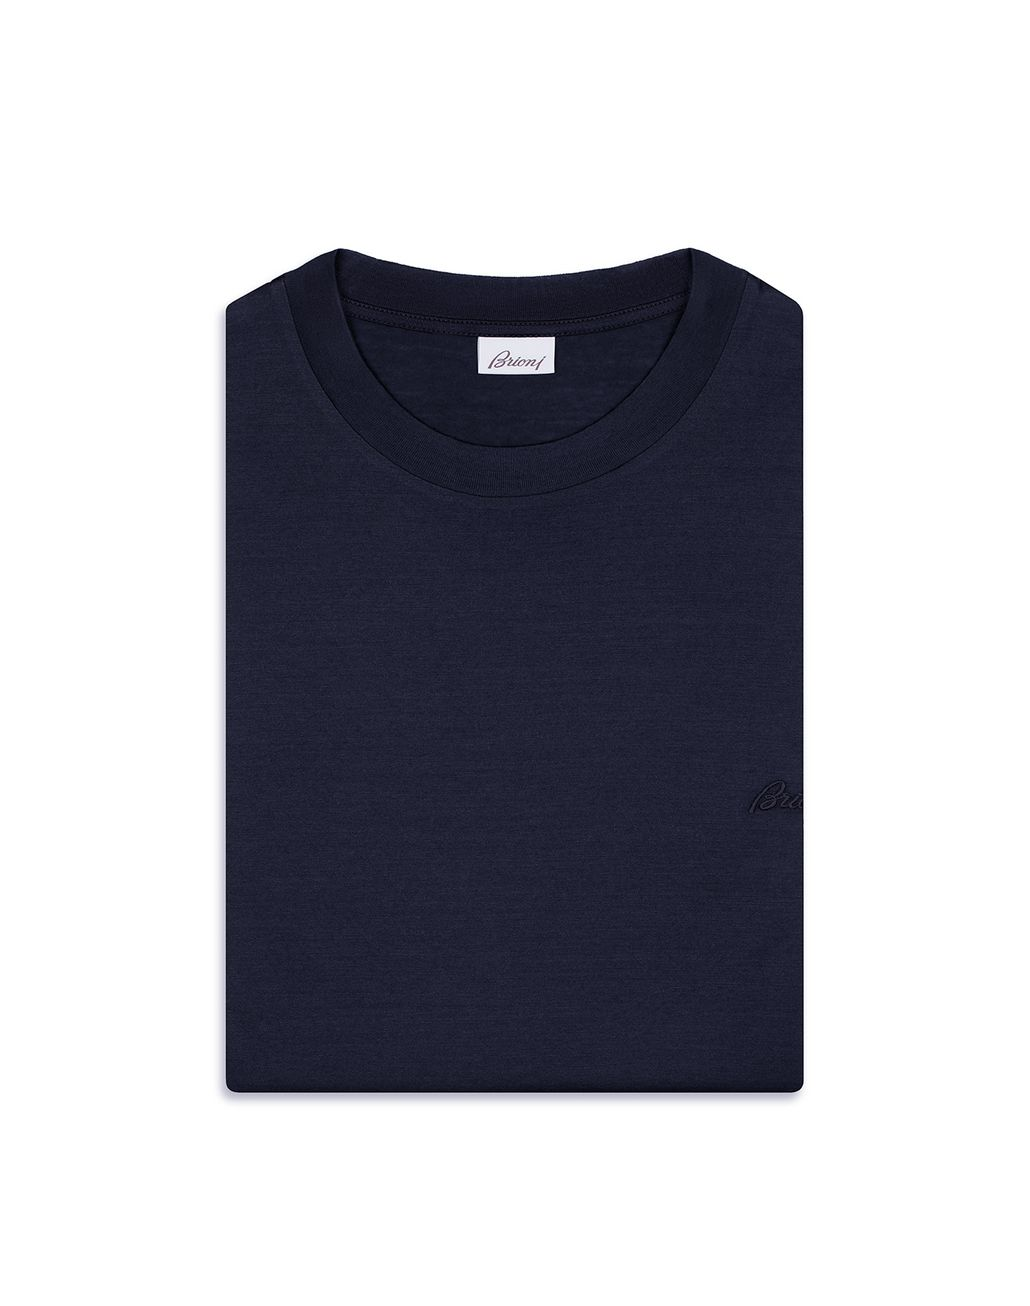 BRIONI Navy Blue Crew Neck T-Shirt T-Shirts & Polos [*** pickupInStoreShippingNotGuaranteed_info ***] e